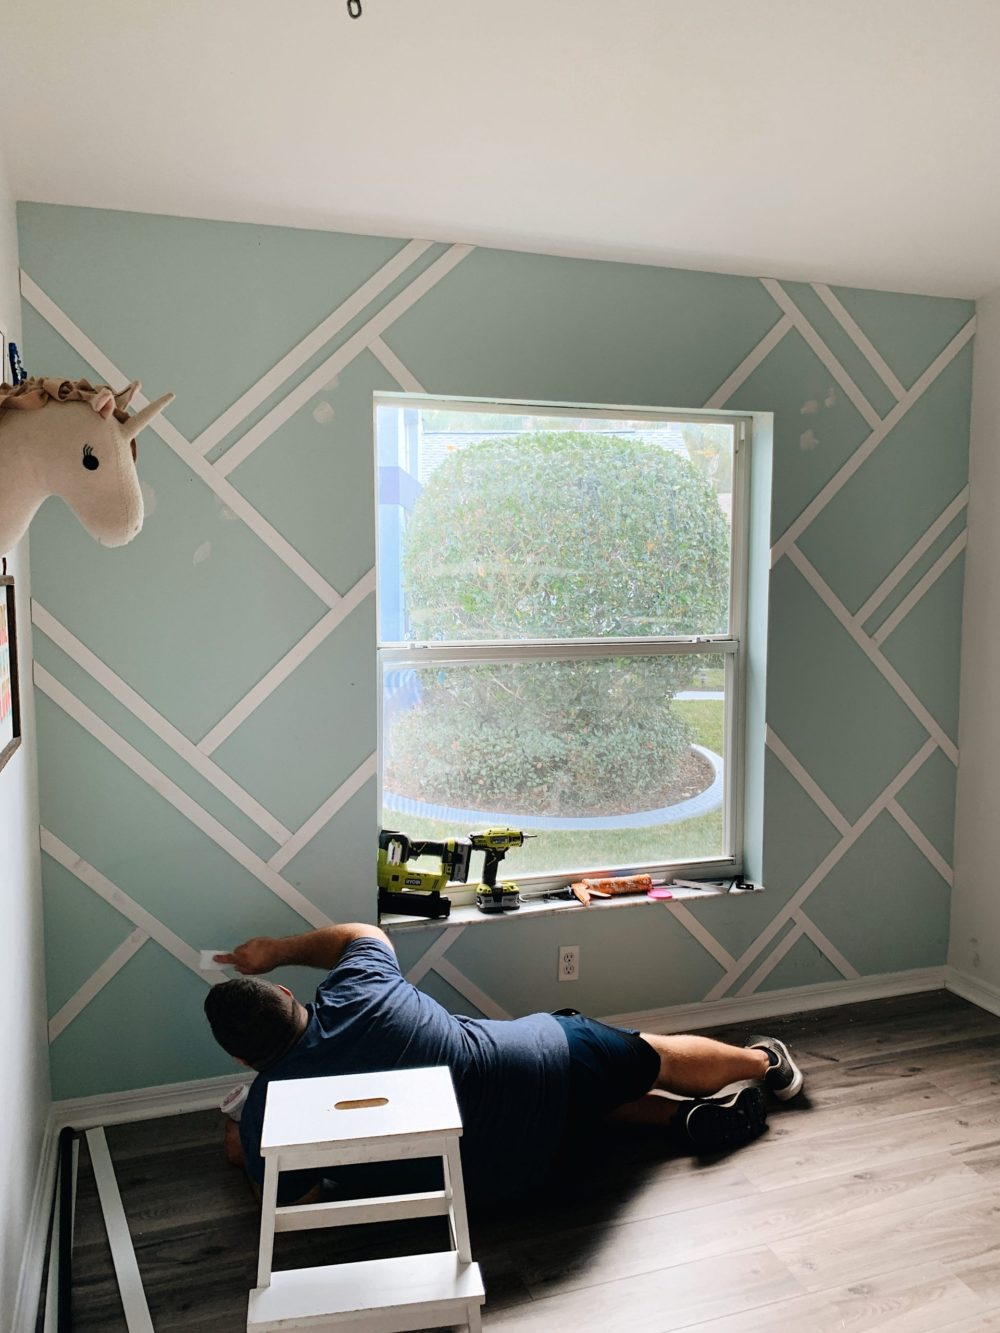 How to DIY a wood design accent wall | Gorgeous Wood Feature Wall + Shared Girl's Room Update by popular Florida home decor blog, Fresh Mommy Blog: before image of a man installing a wood accent wall in a shared girls' room.